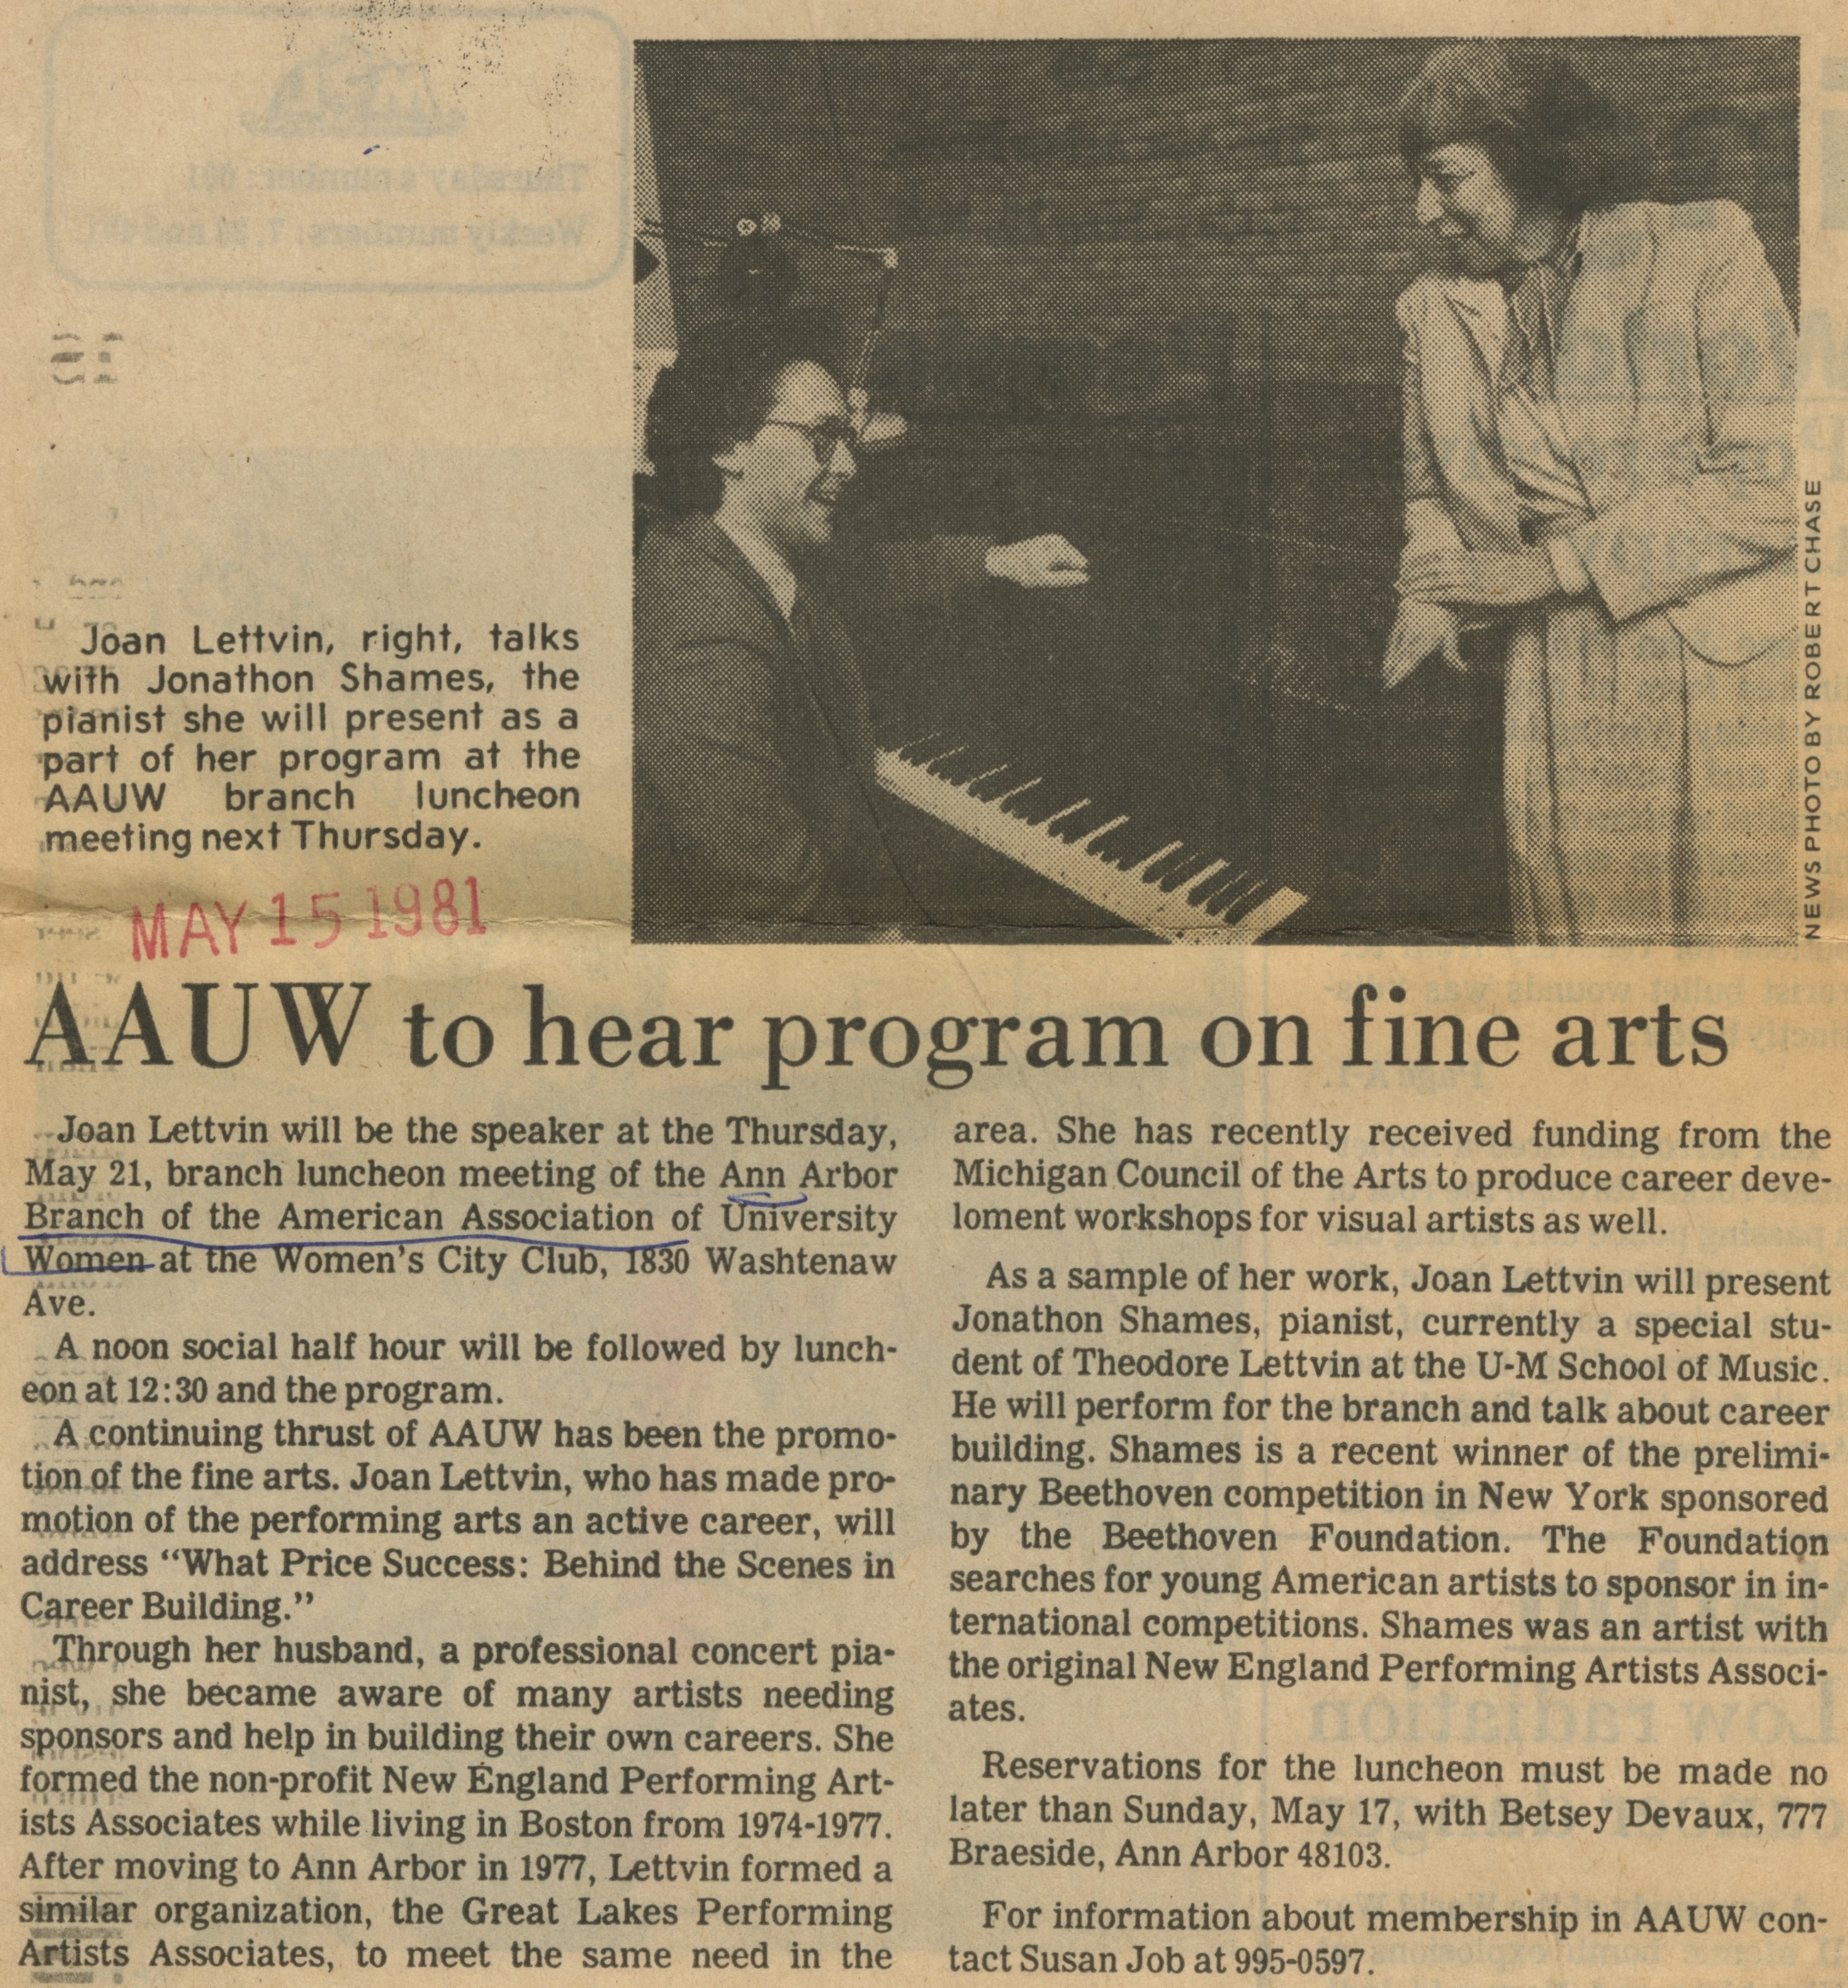 AAUW to Hear Program on Fine Arts image